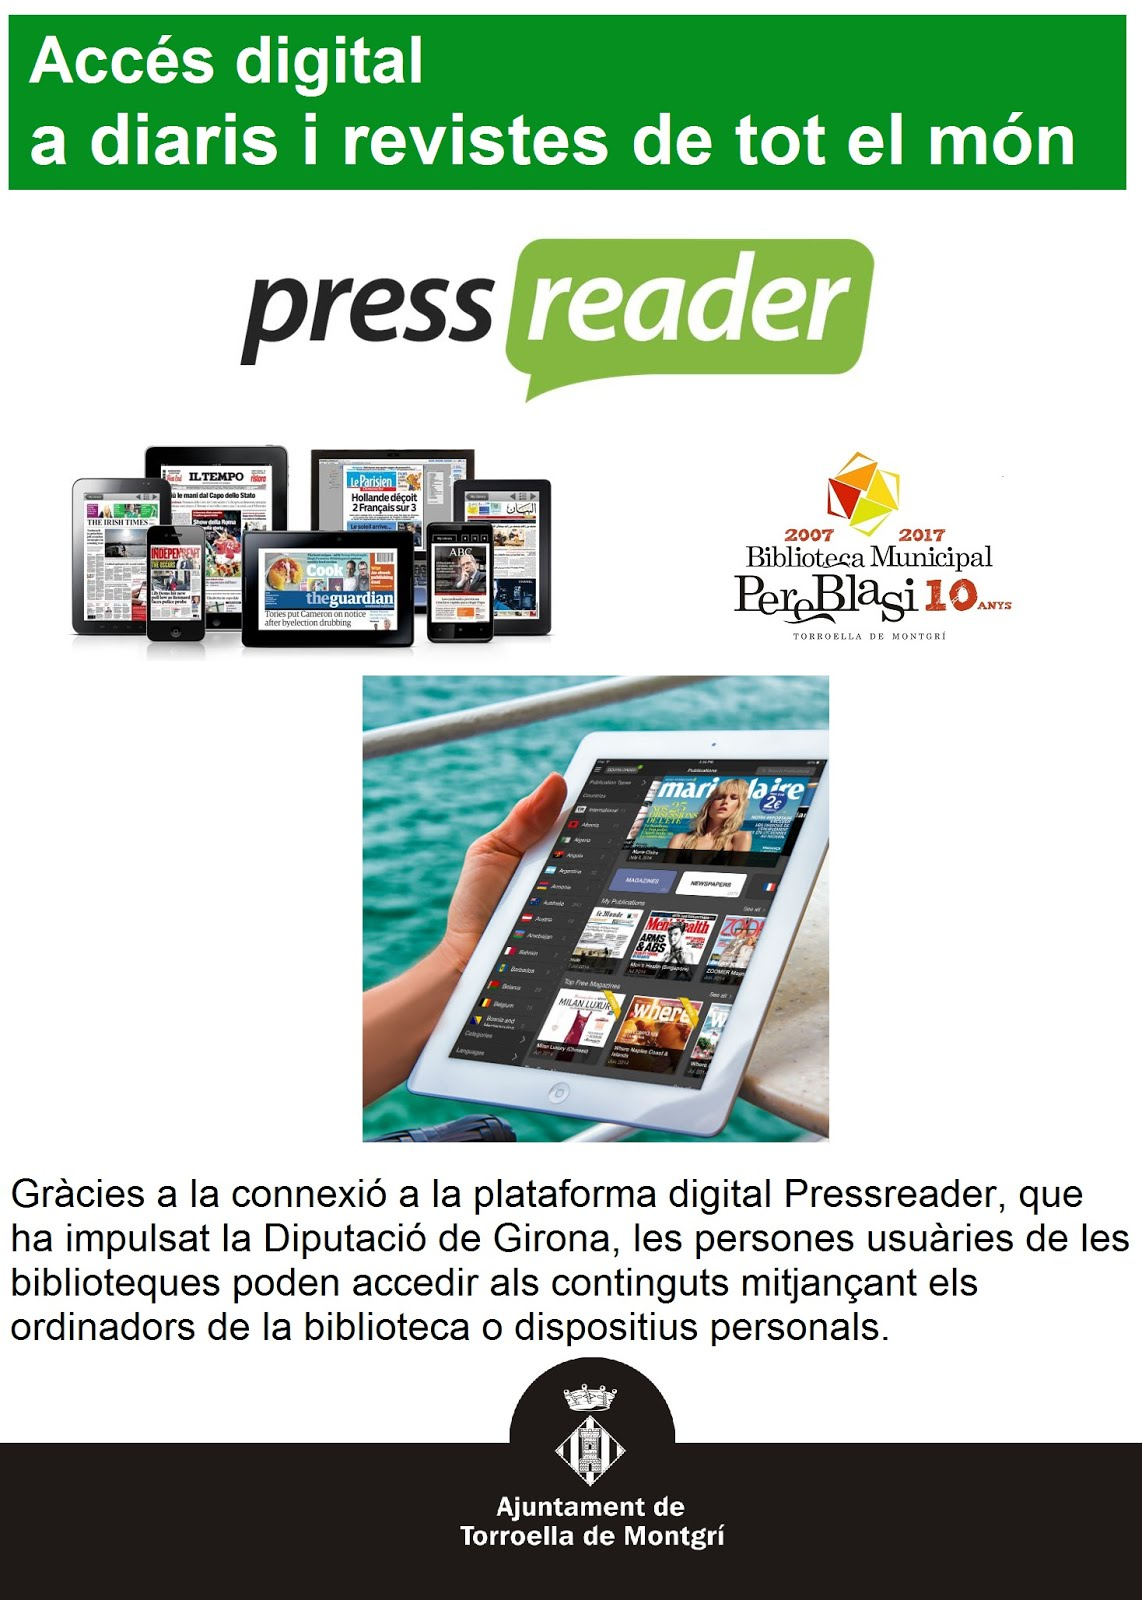 Pressreader accés digital a diaris i revistes de tot el món